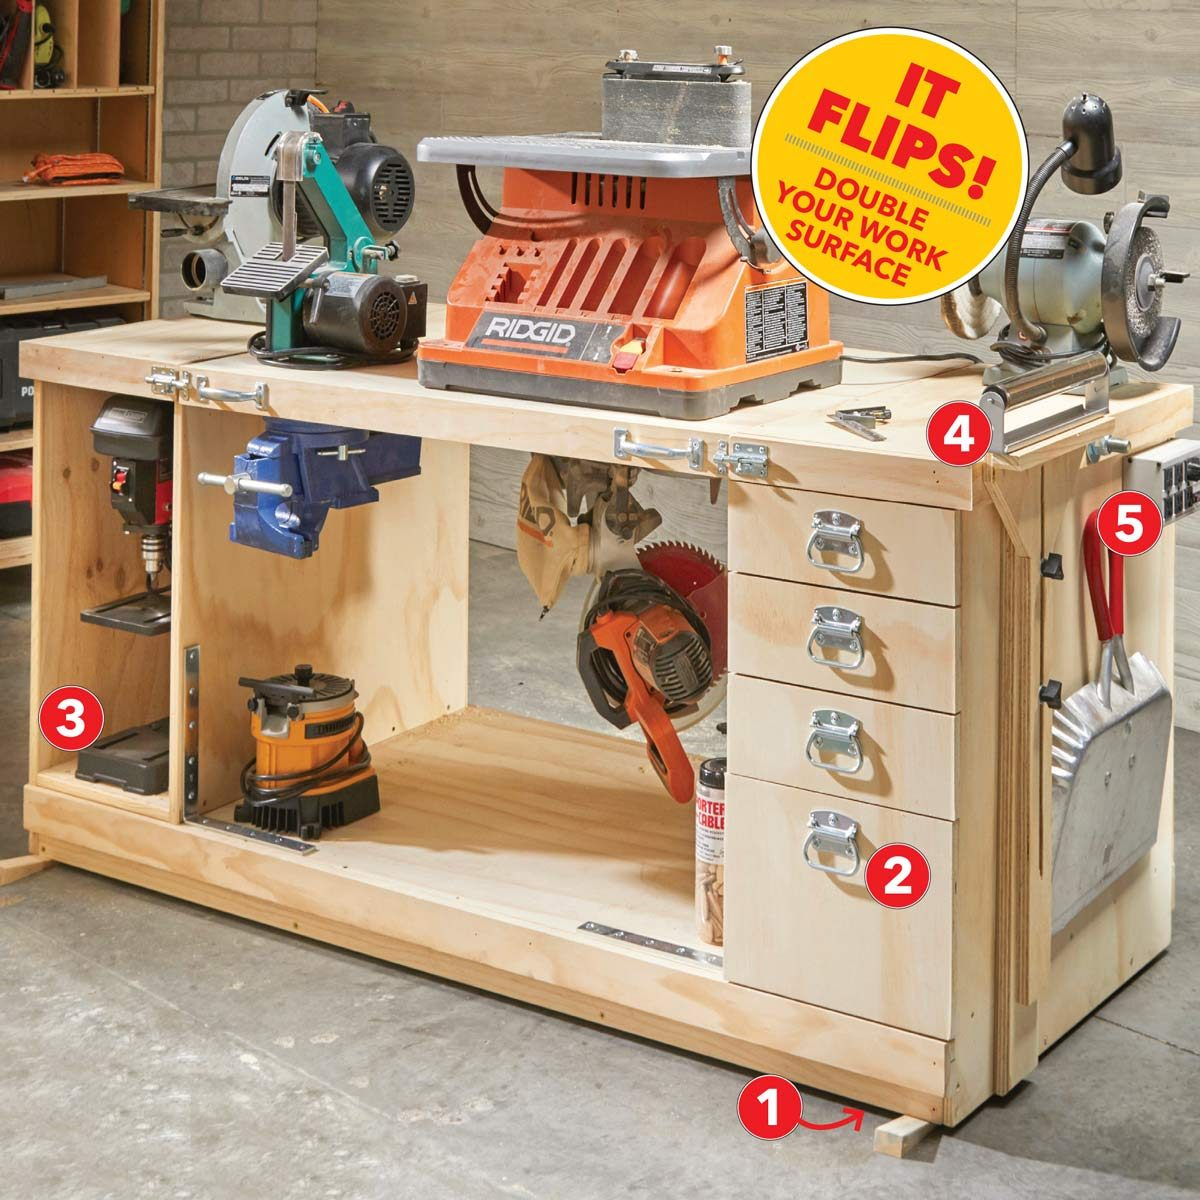 Diy Workbench With Wheels 14 Super Simple Workbenches You Can Build The Family Handyman